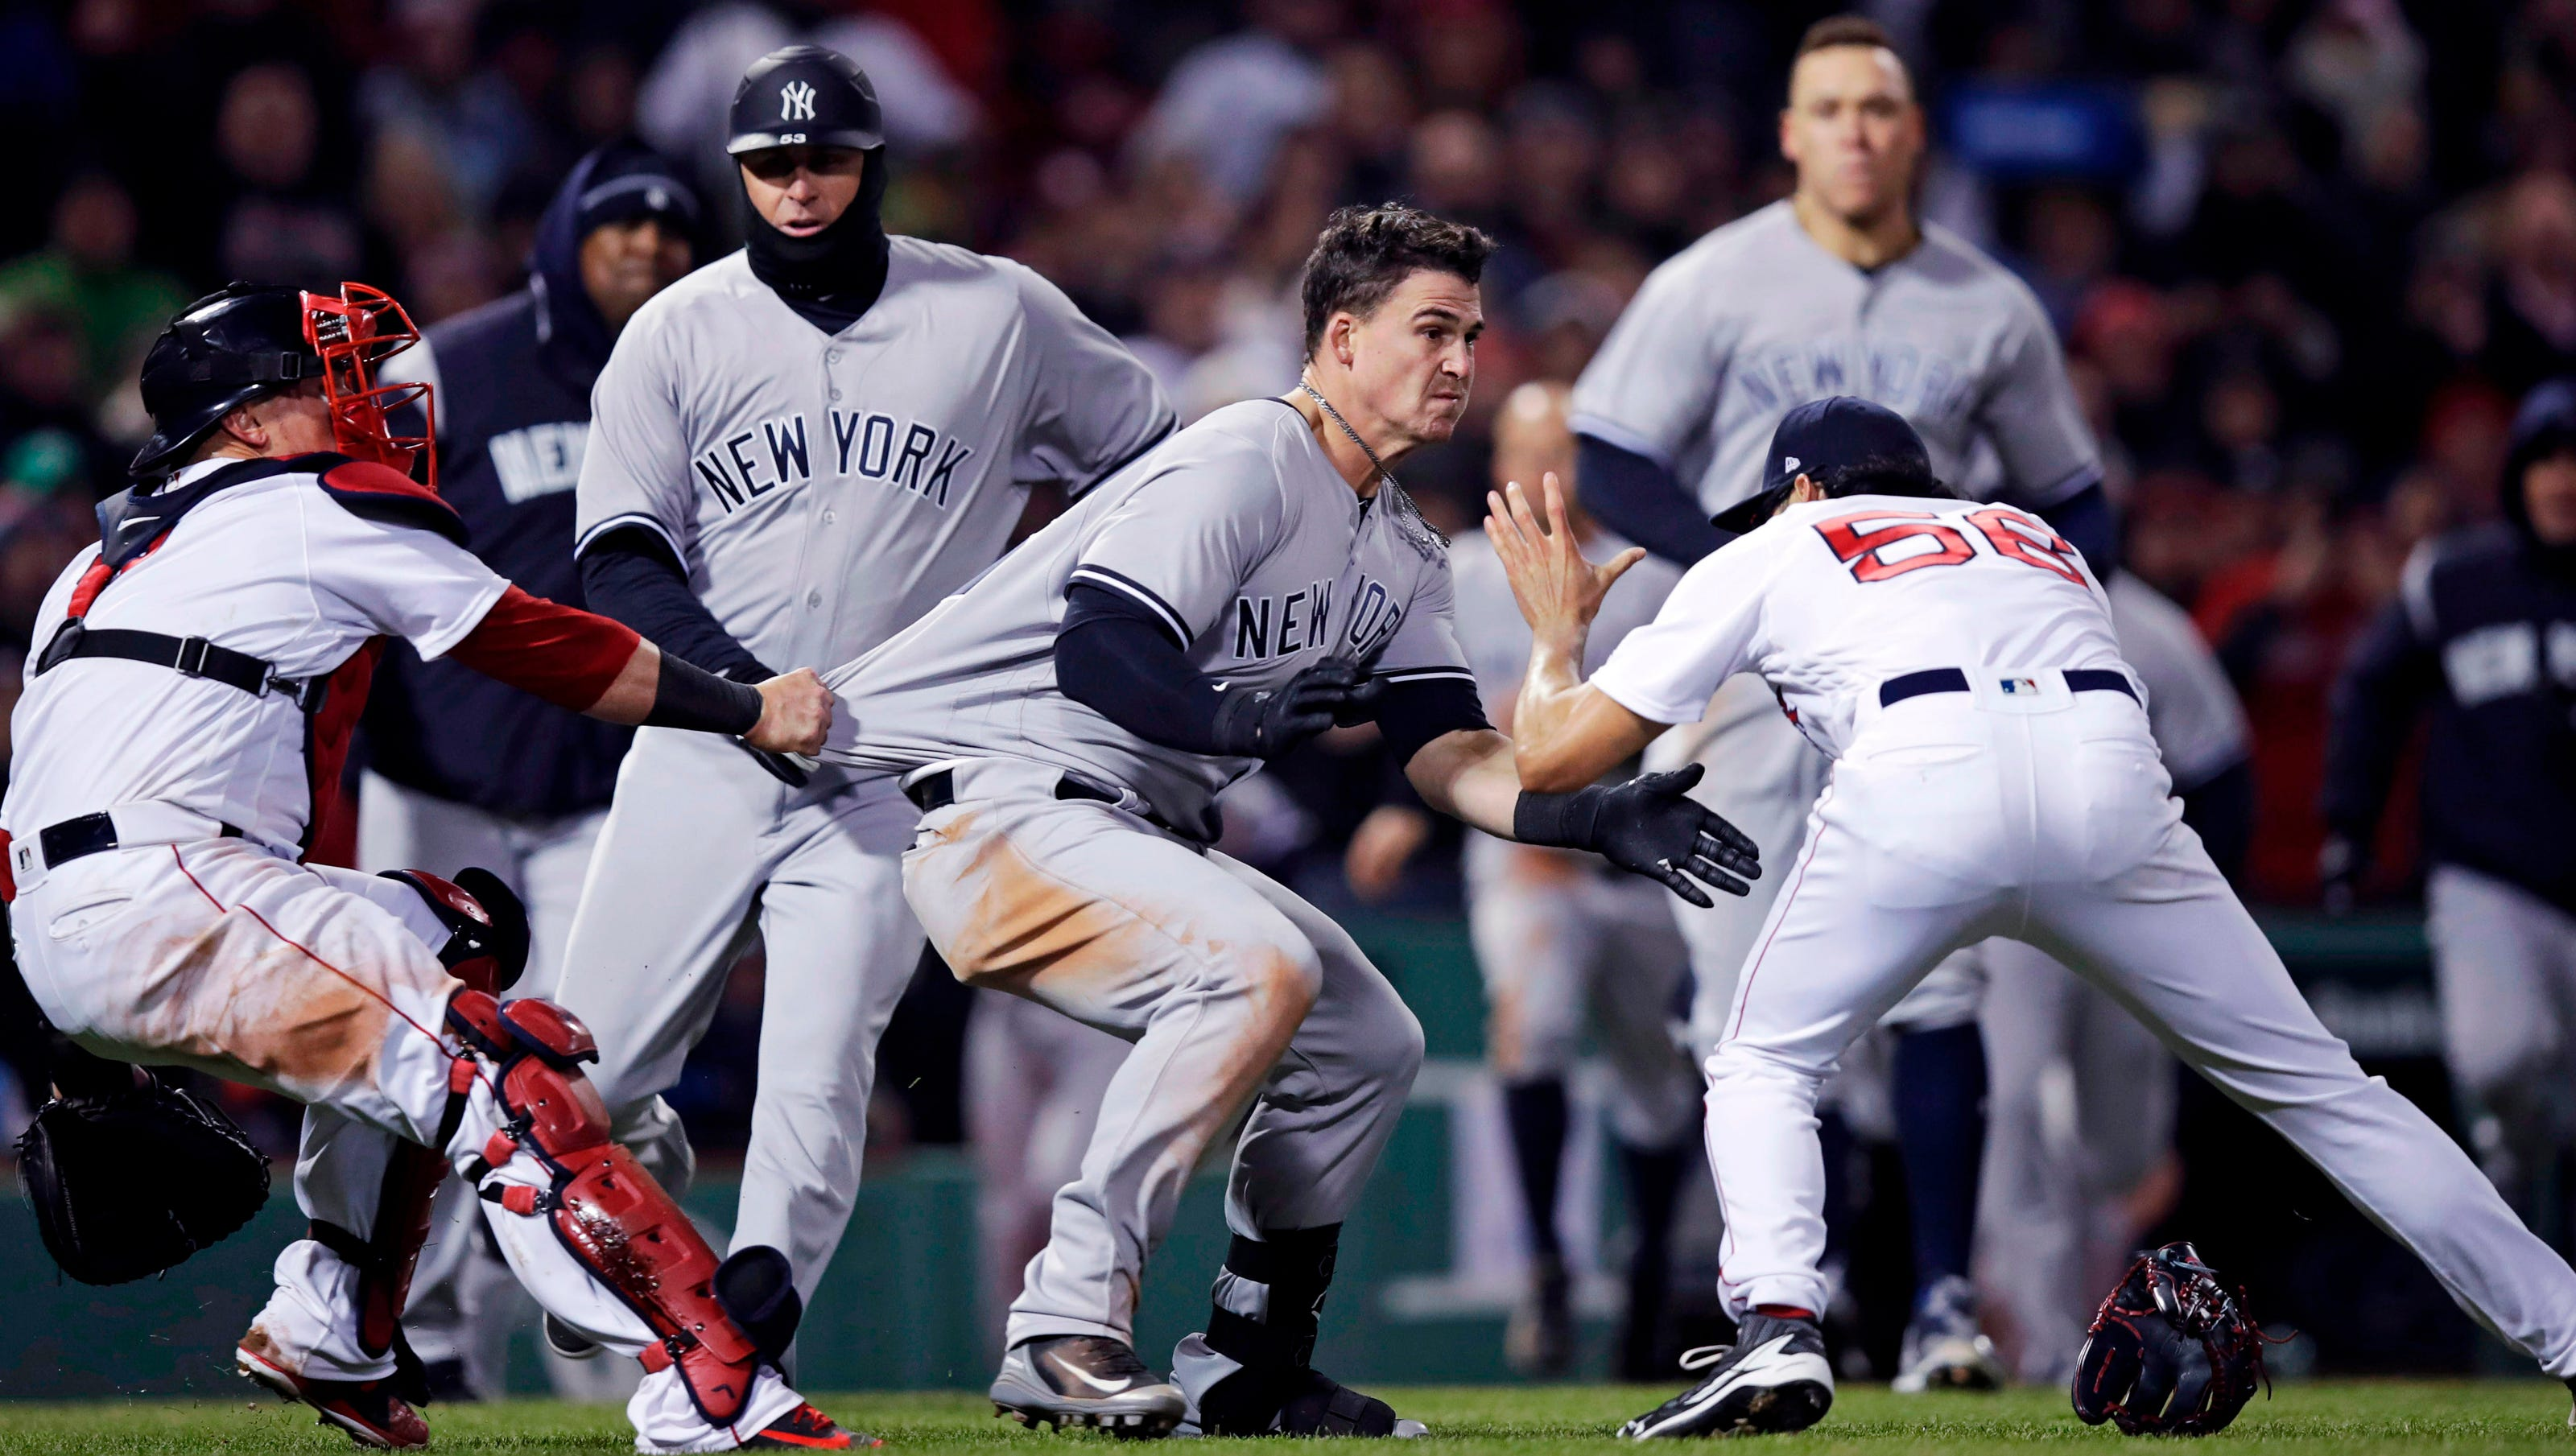 New York Yankees Red Sox To Play Two Games In London Next Year